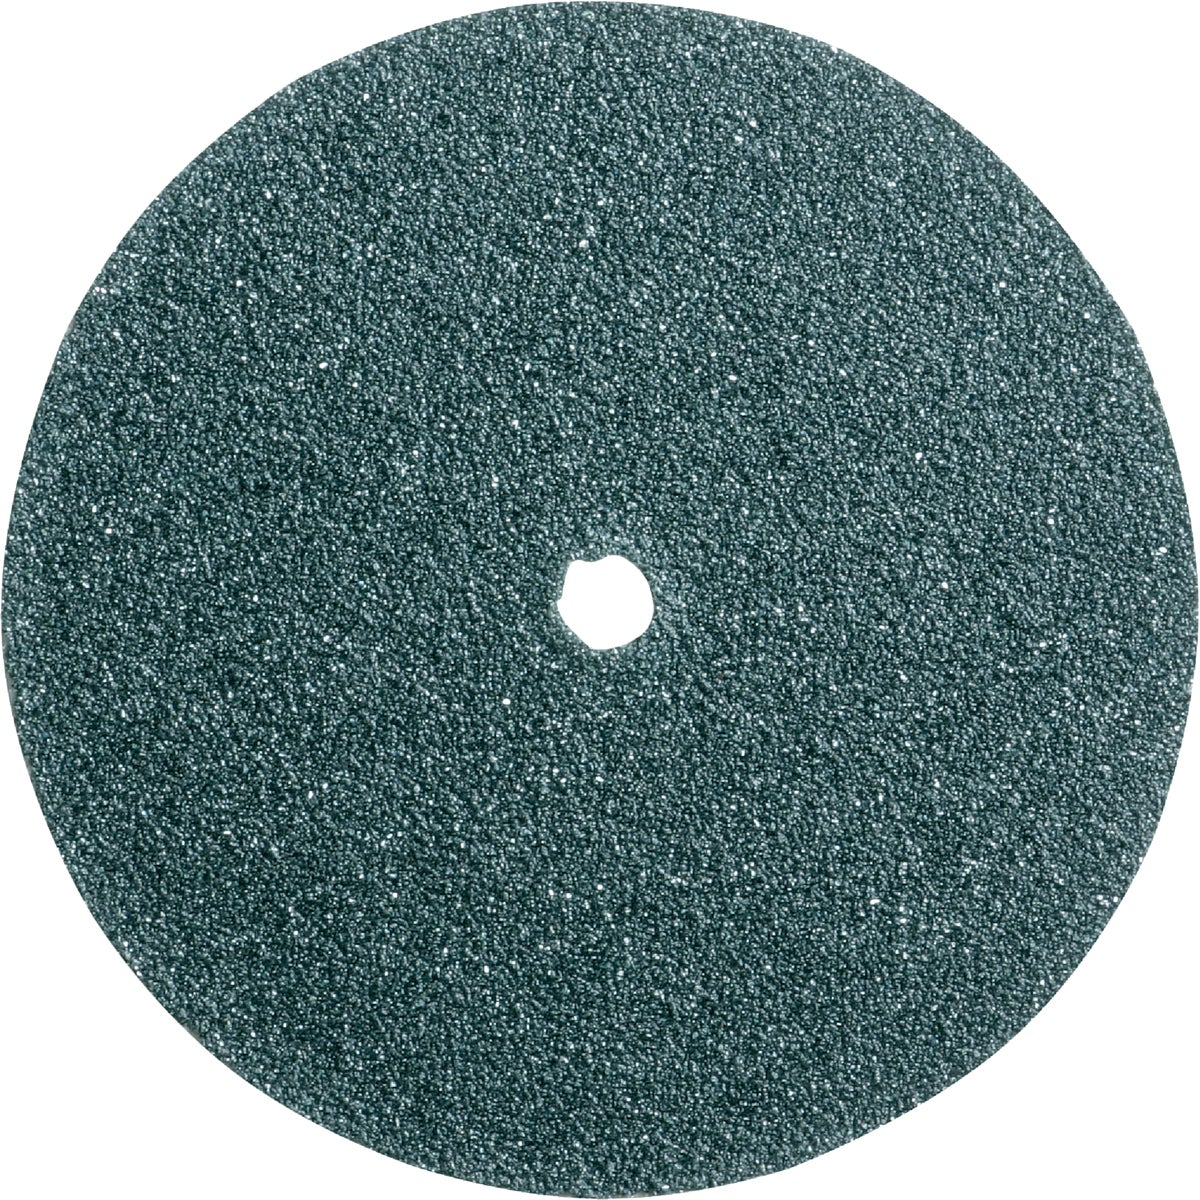 COARSE SANDING DISC - 411 by Dremel Mfg Co